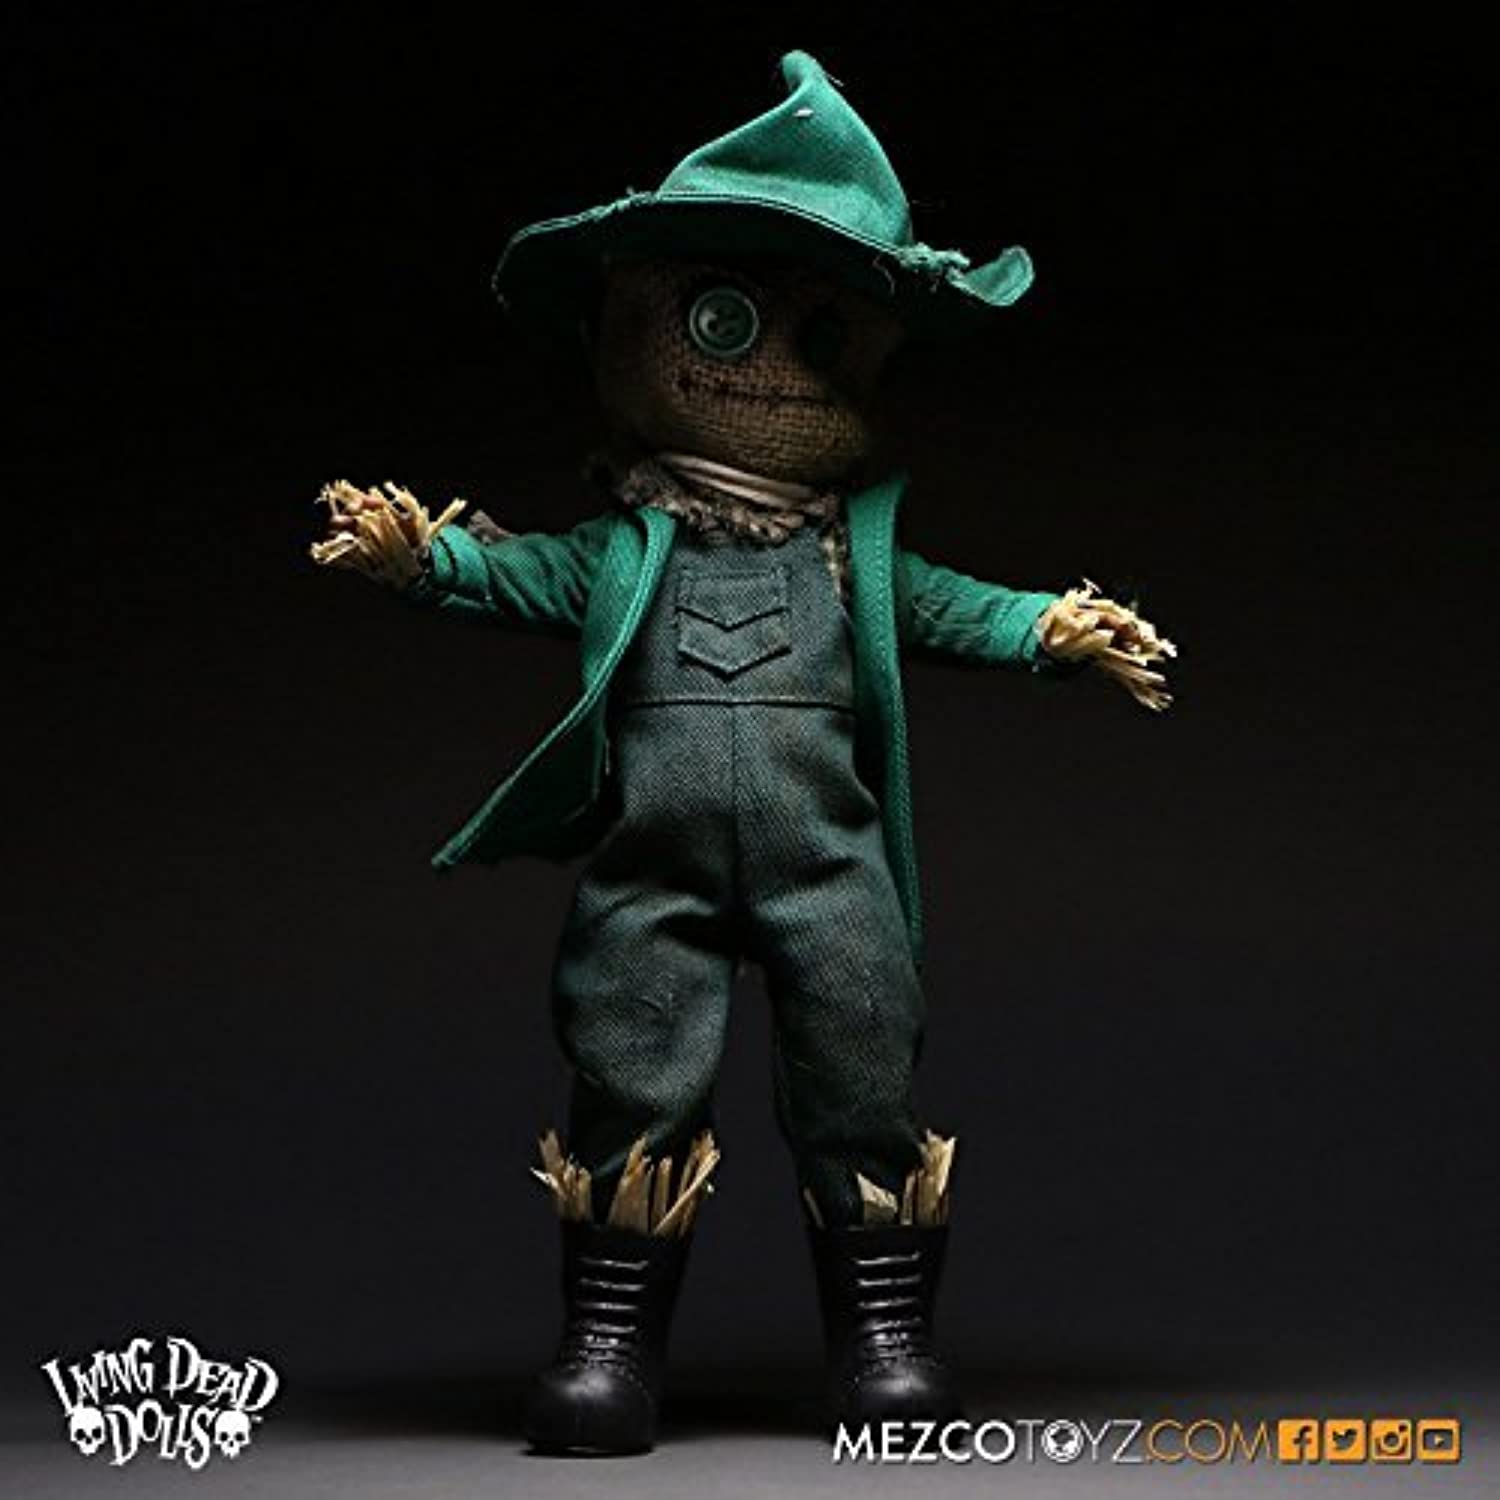 Living Dead Dolls Limited Edition Wizard of Oz   scarecrow variant color Living Dead Dolls in OZ